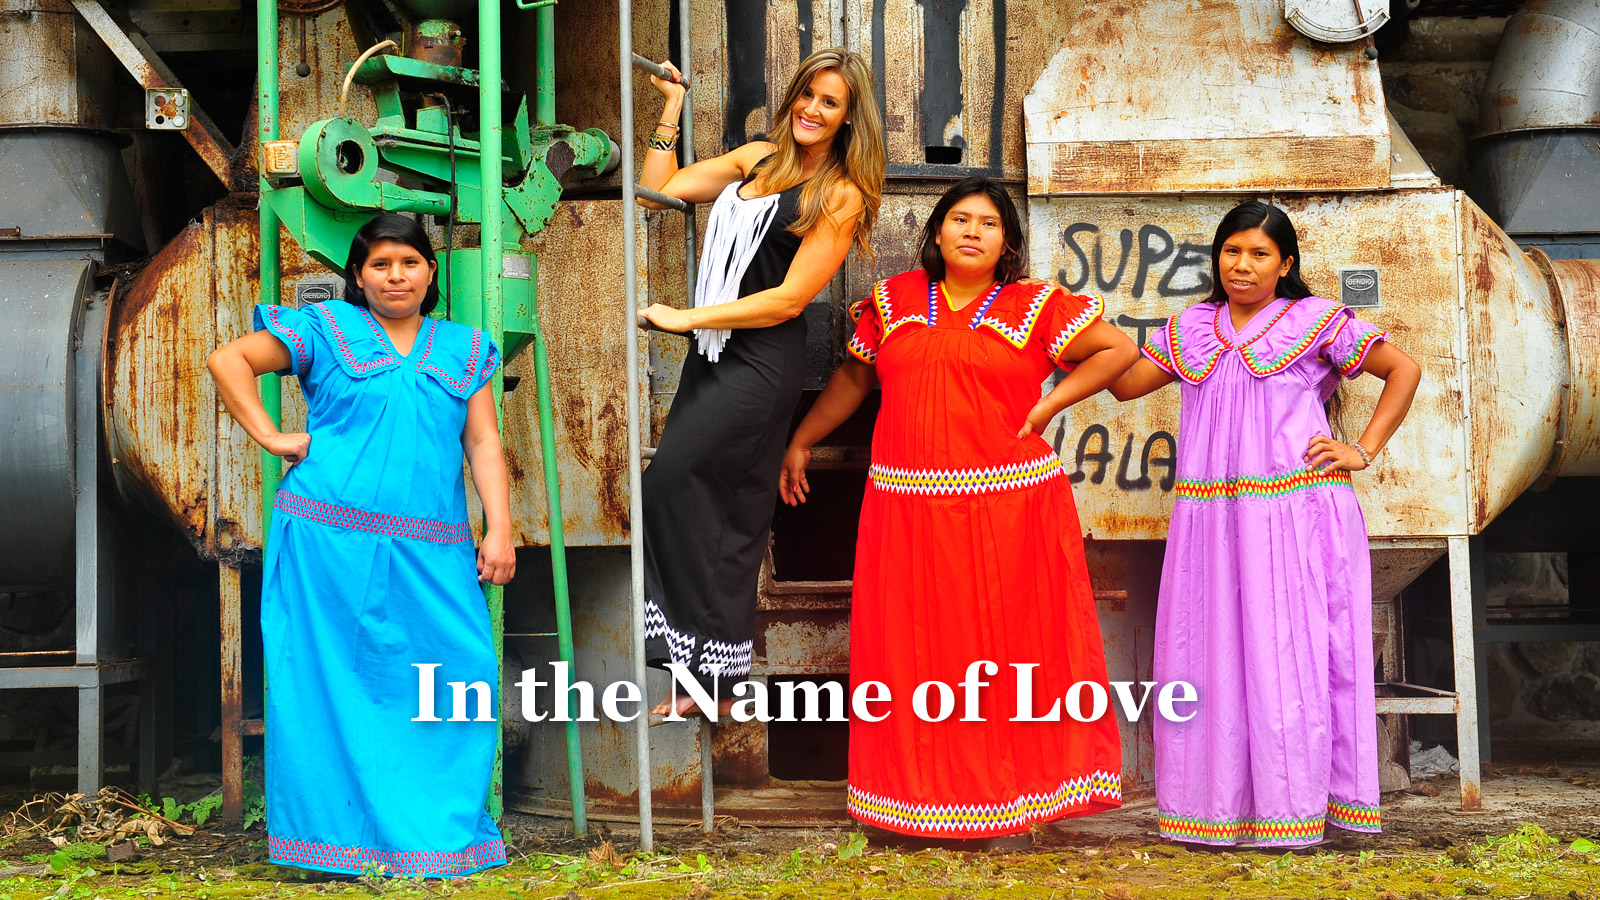 4Love Nonprofit Empowers Women in Panama